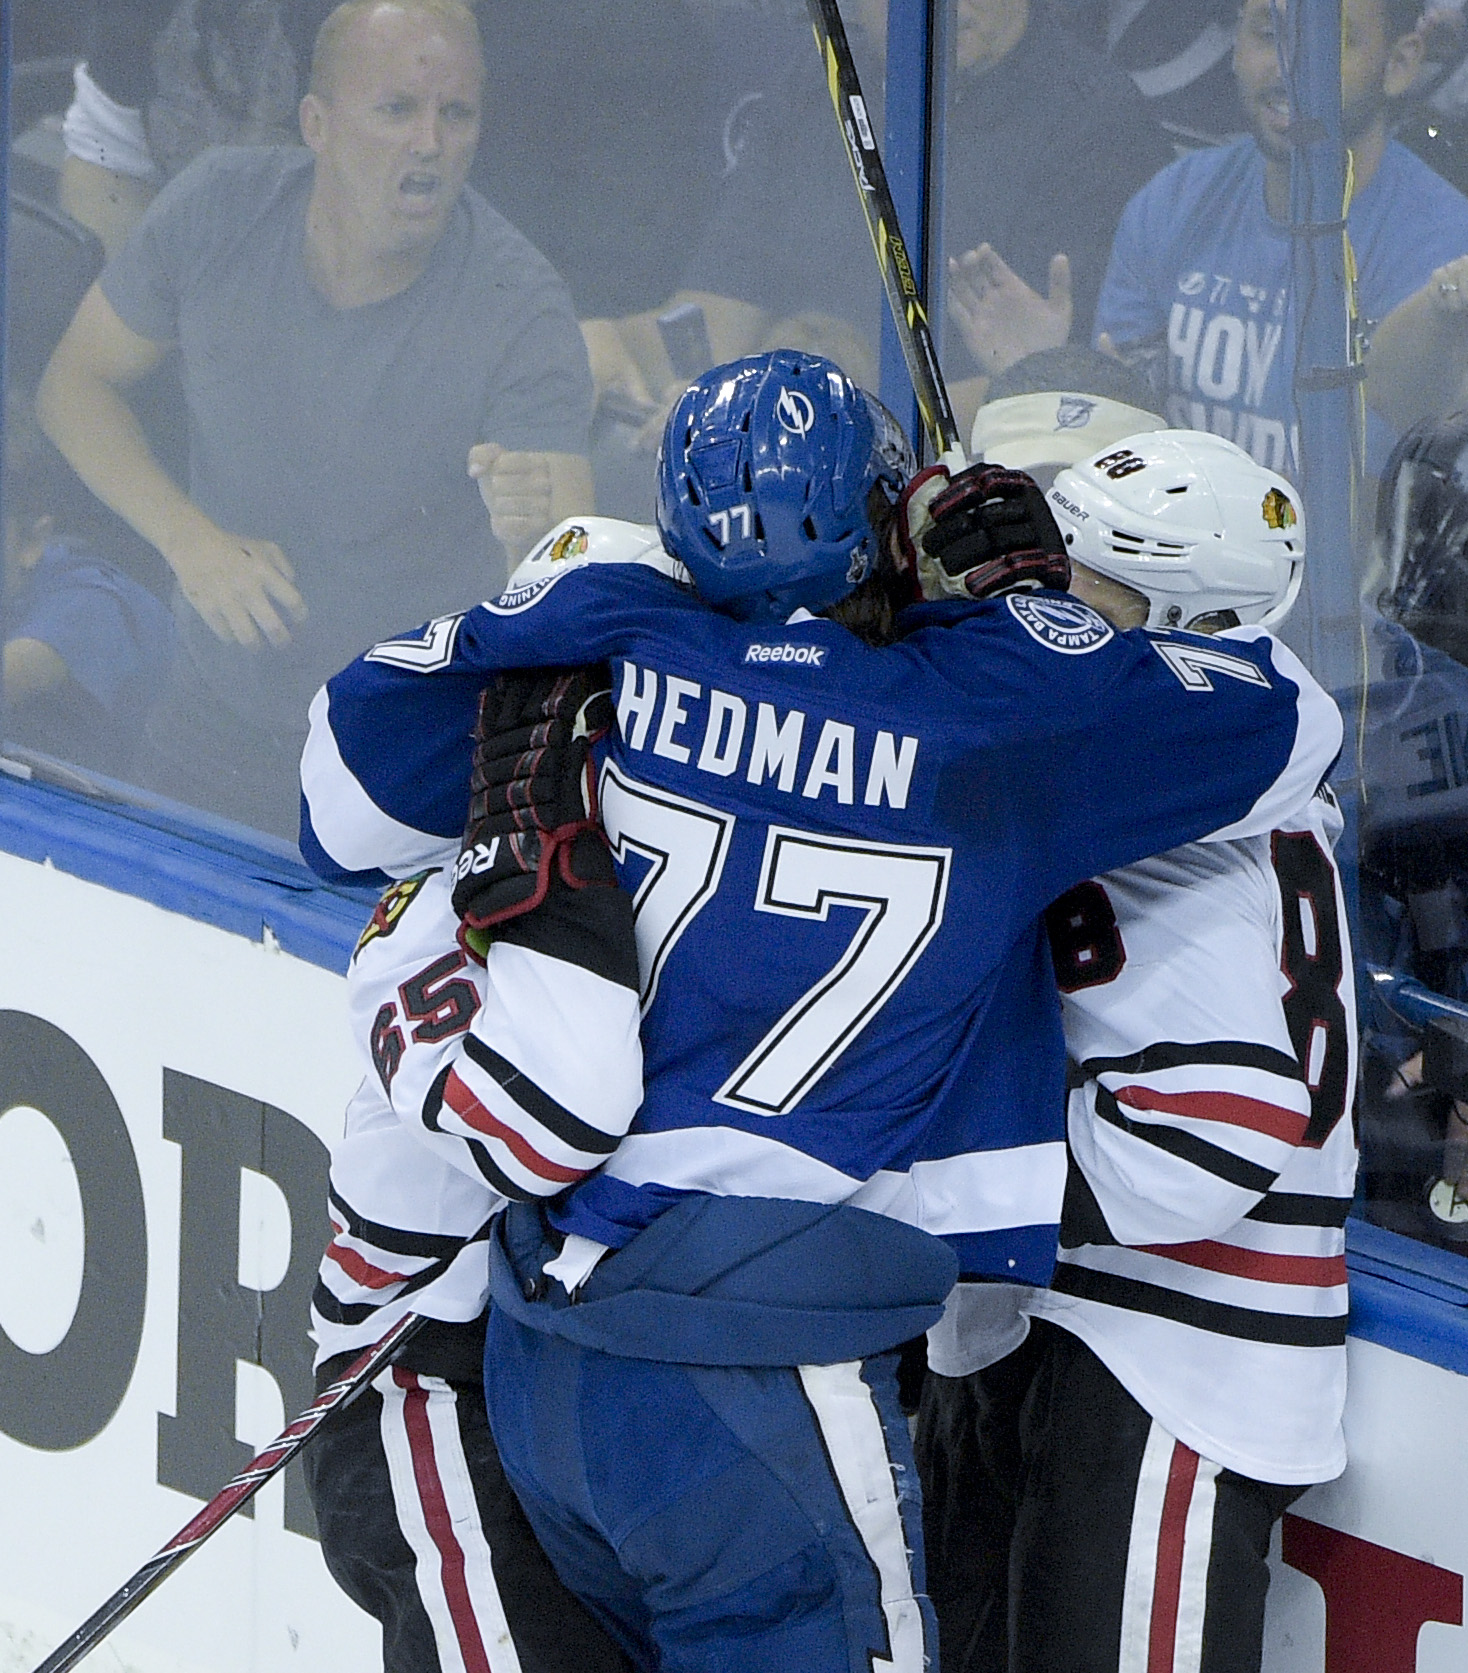 Tampa Bay Lightning defenseman Victor Hedman, middle, said he might have been bitten by Chicago Blackhawks center Andrew Shaw, left, while in a scrum with Patrick Kane during the first period in Game 1 of the NHL hockey Stanley Cup Final in Tampa, Fla., W